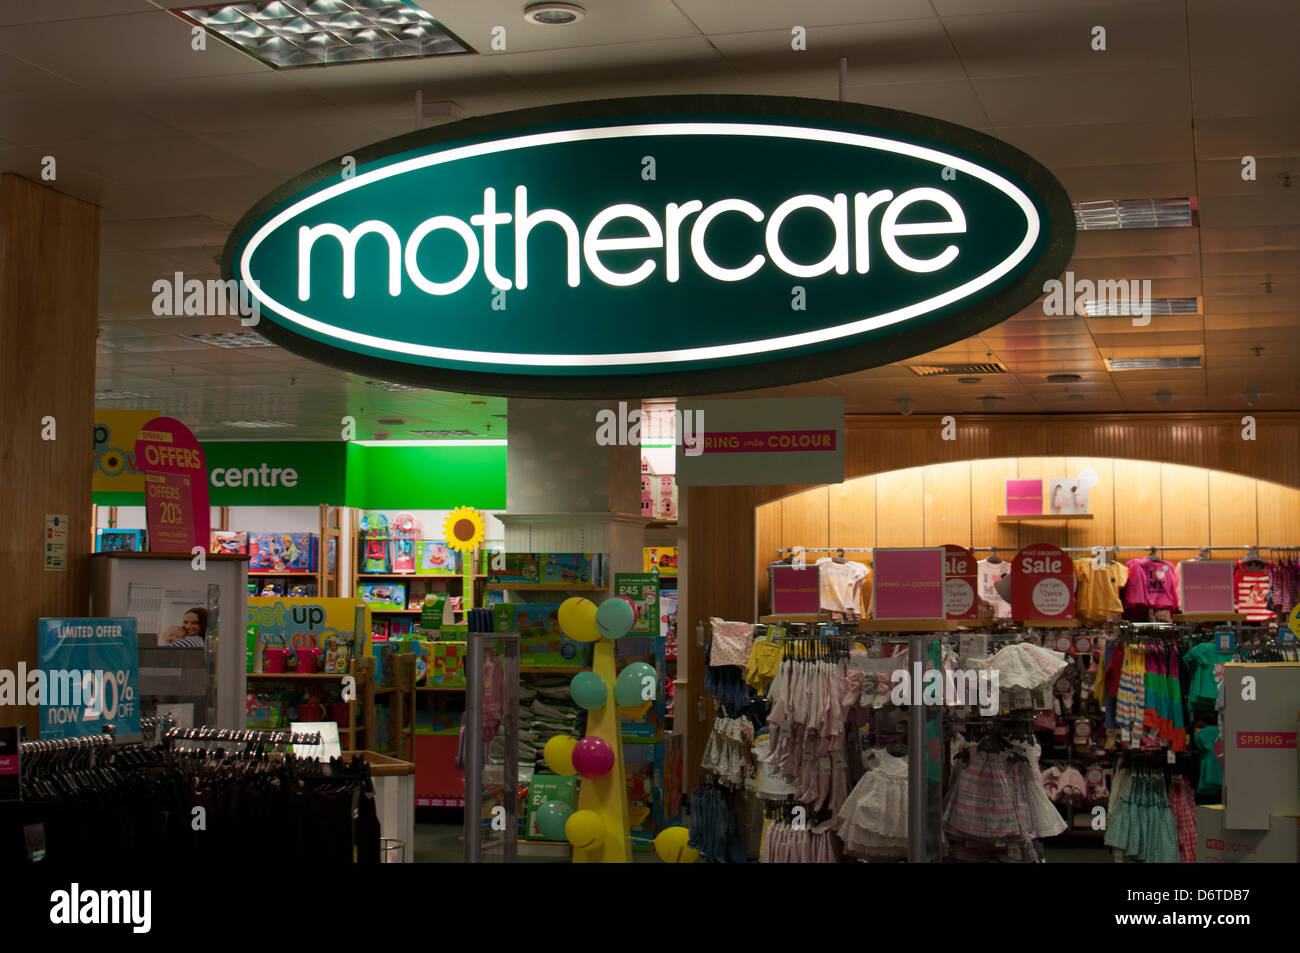 Mothercare store - Stock Image